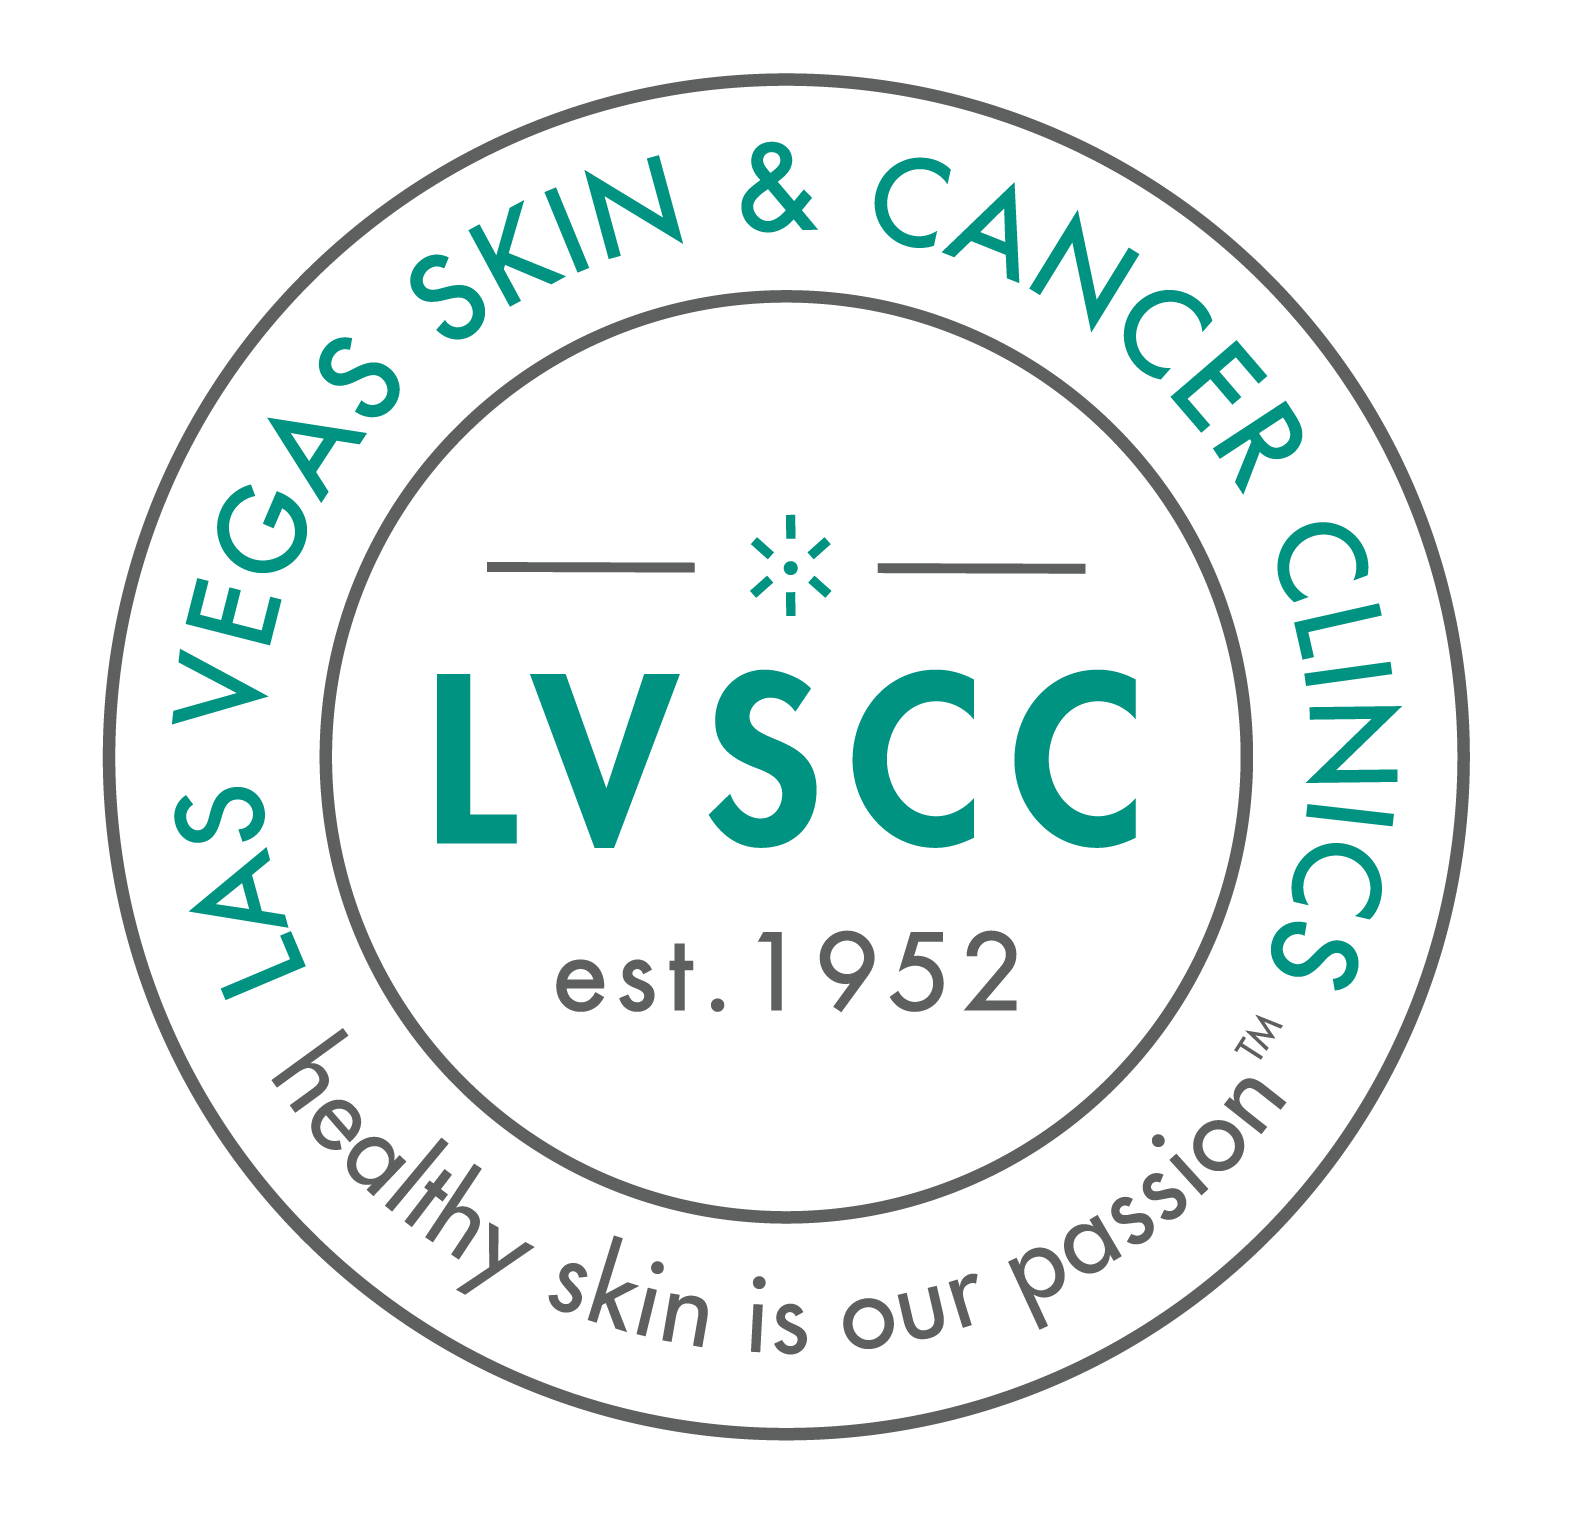 Las Vegas Skin & Cancer South Pecos, a Top Las Vegas Dermatologist in NV Announces Expanded Hours